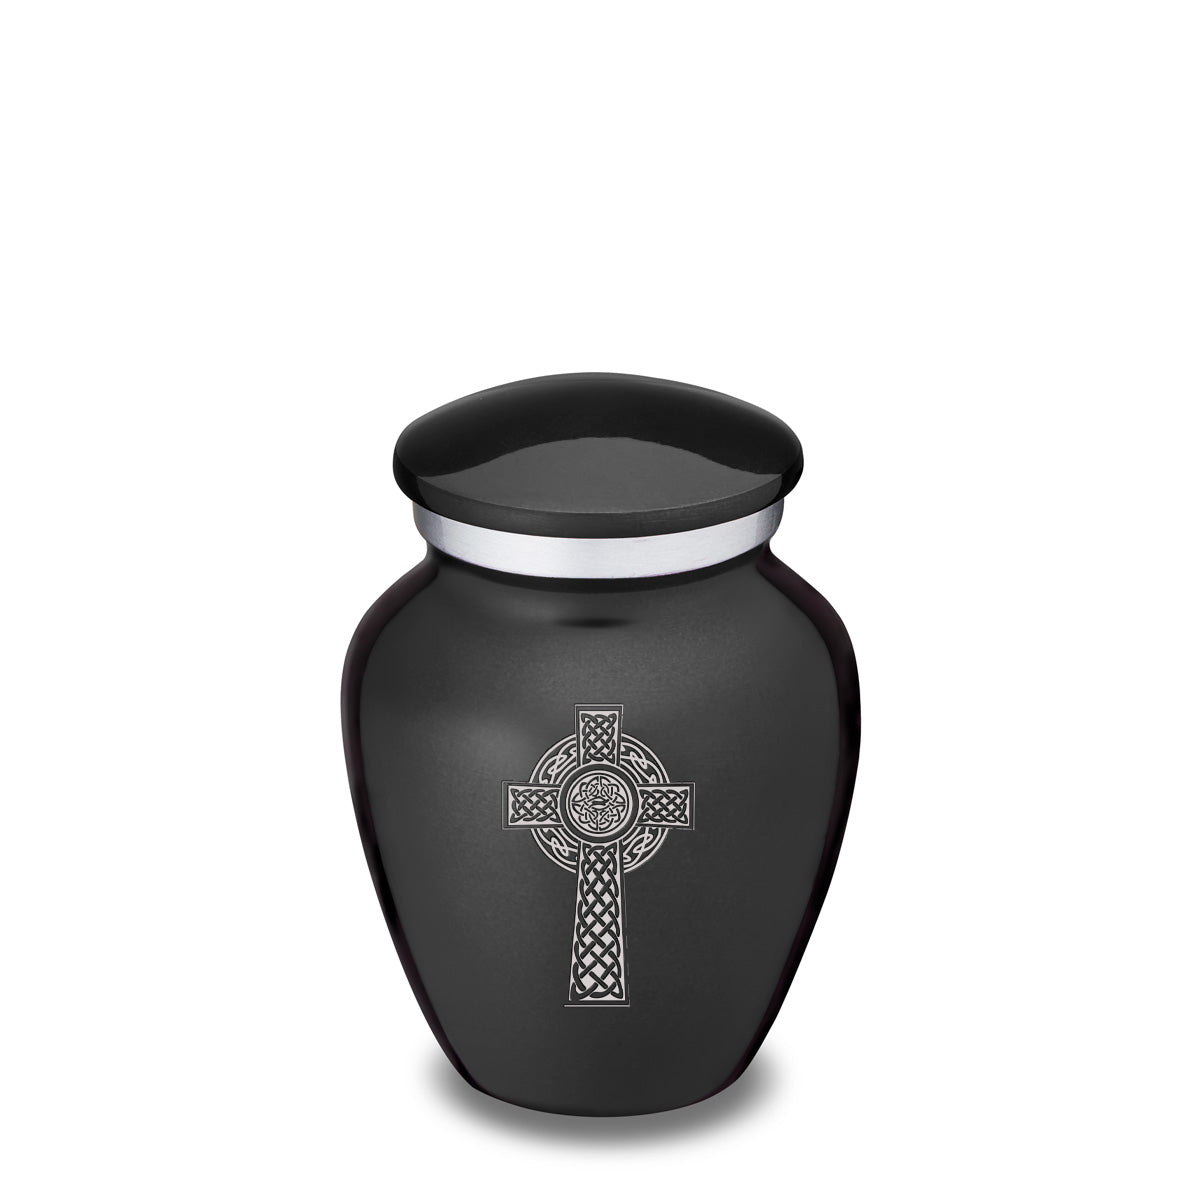 Keepsake Embrace Charcoal Celtic Cross Cremation Urn